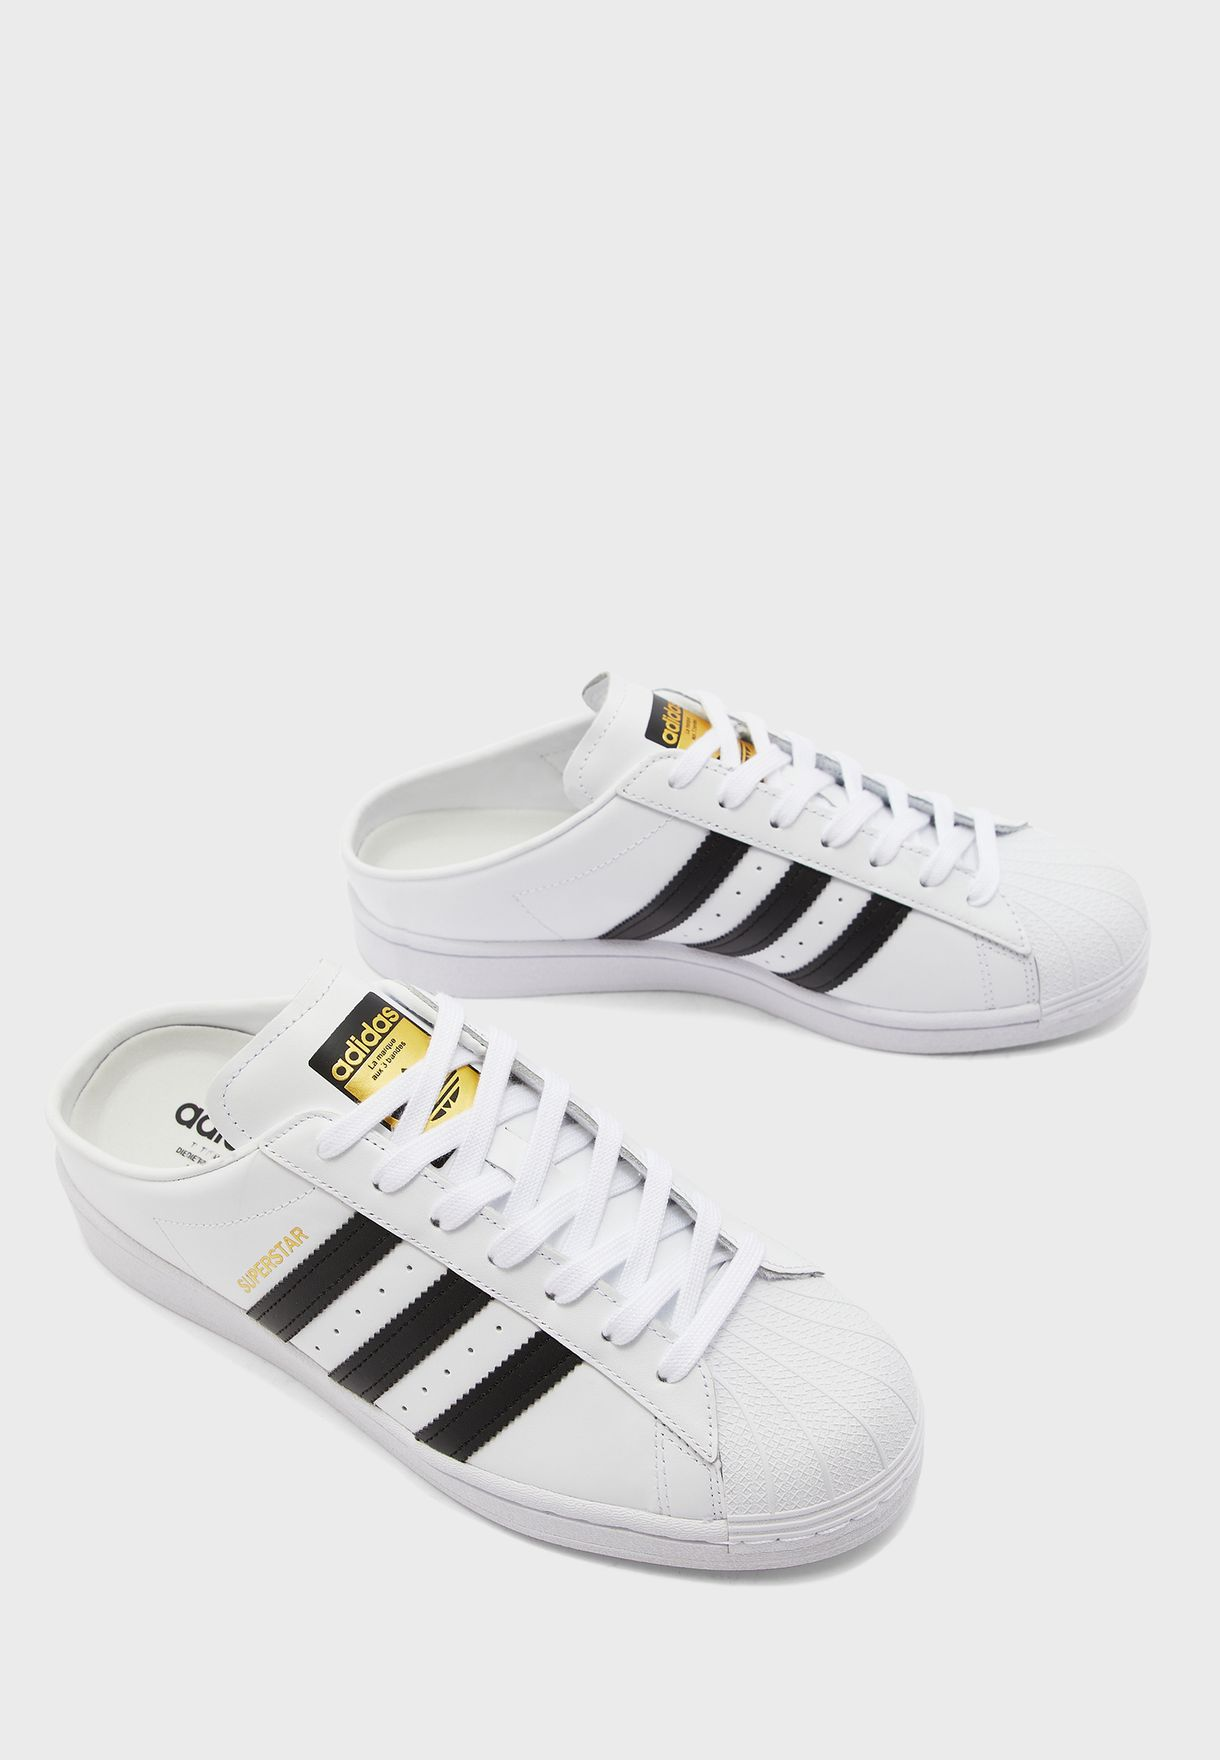 puño cocodrilo Patriótico  Buy adidas Originals white Superstar Mule for Men in MENA, Worldwide |  FX0527